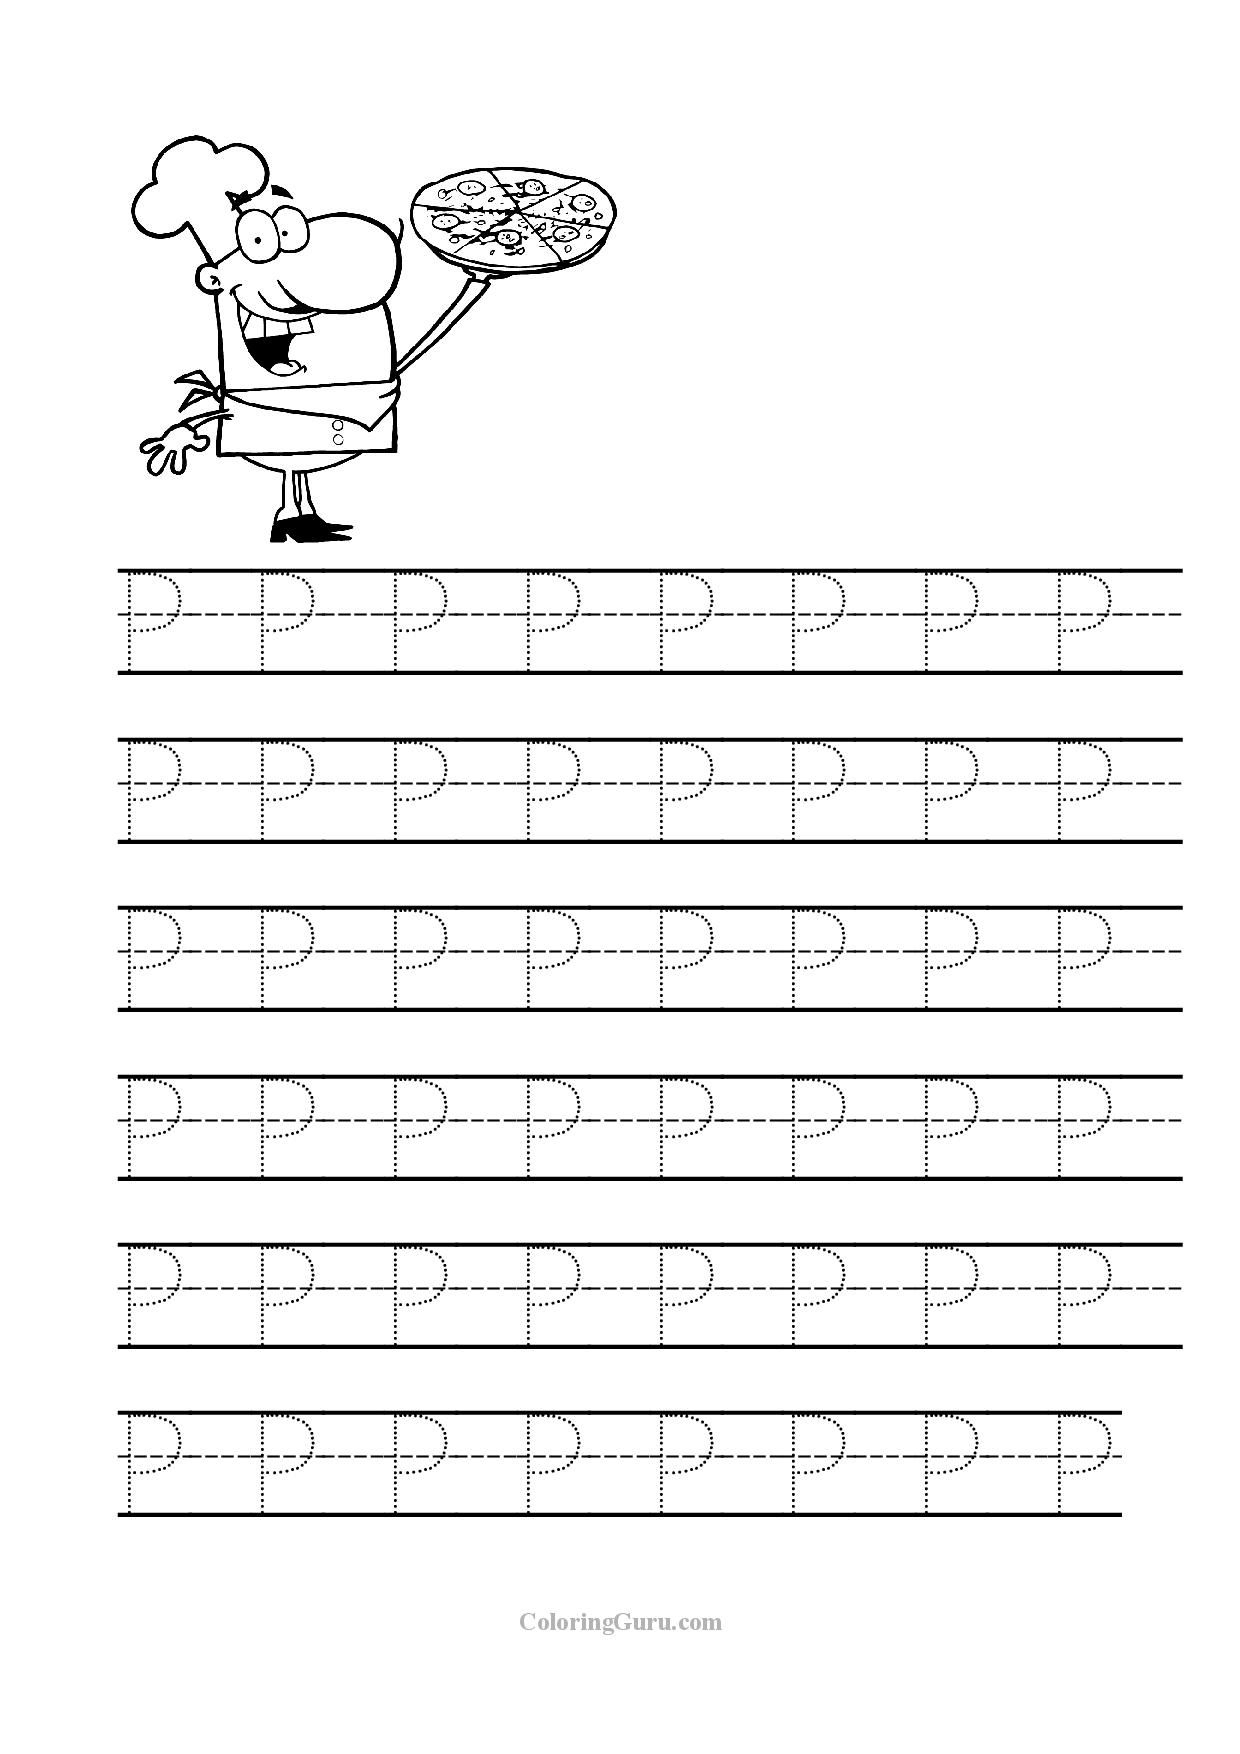 Free Printable Tracing Letter P Worksheets For Preschool | Tracing | Free Printable Letter P Worksheets